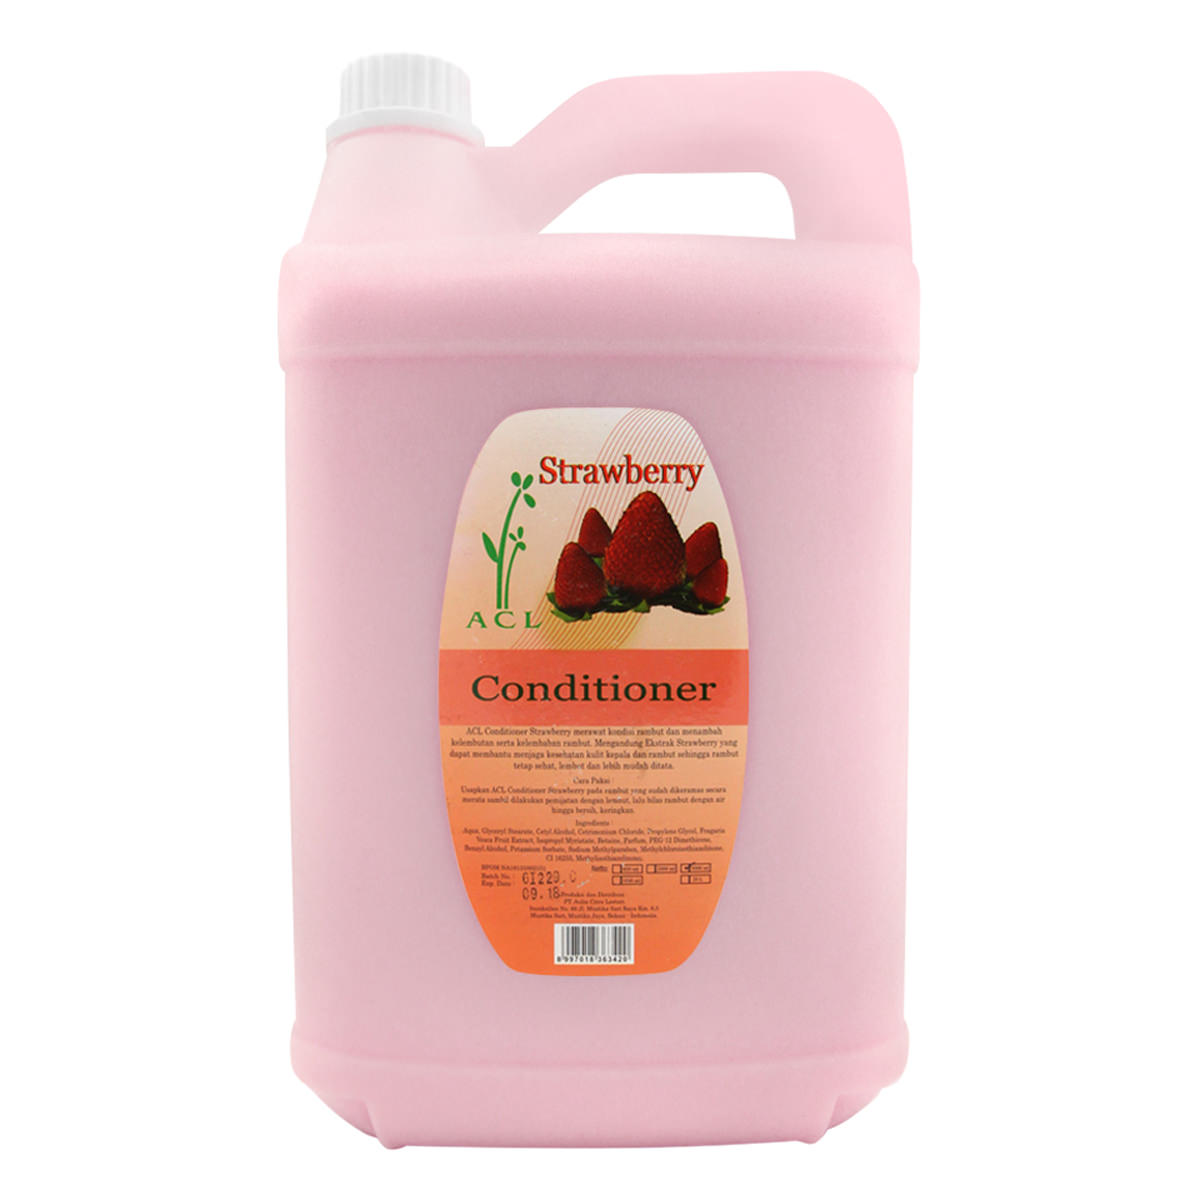 ACL-Conditioner-Strawberry-(5000-ml)-sfw